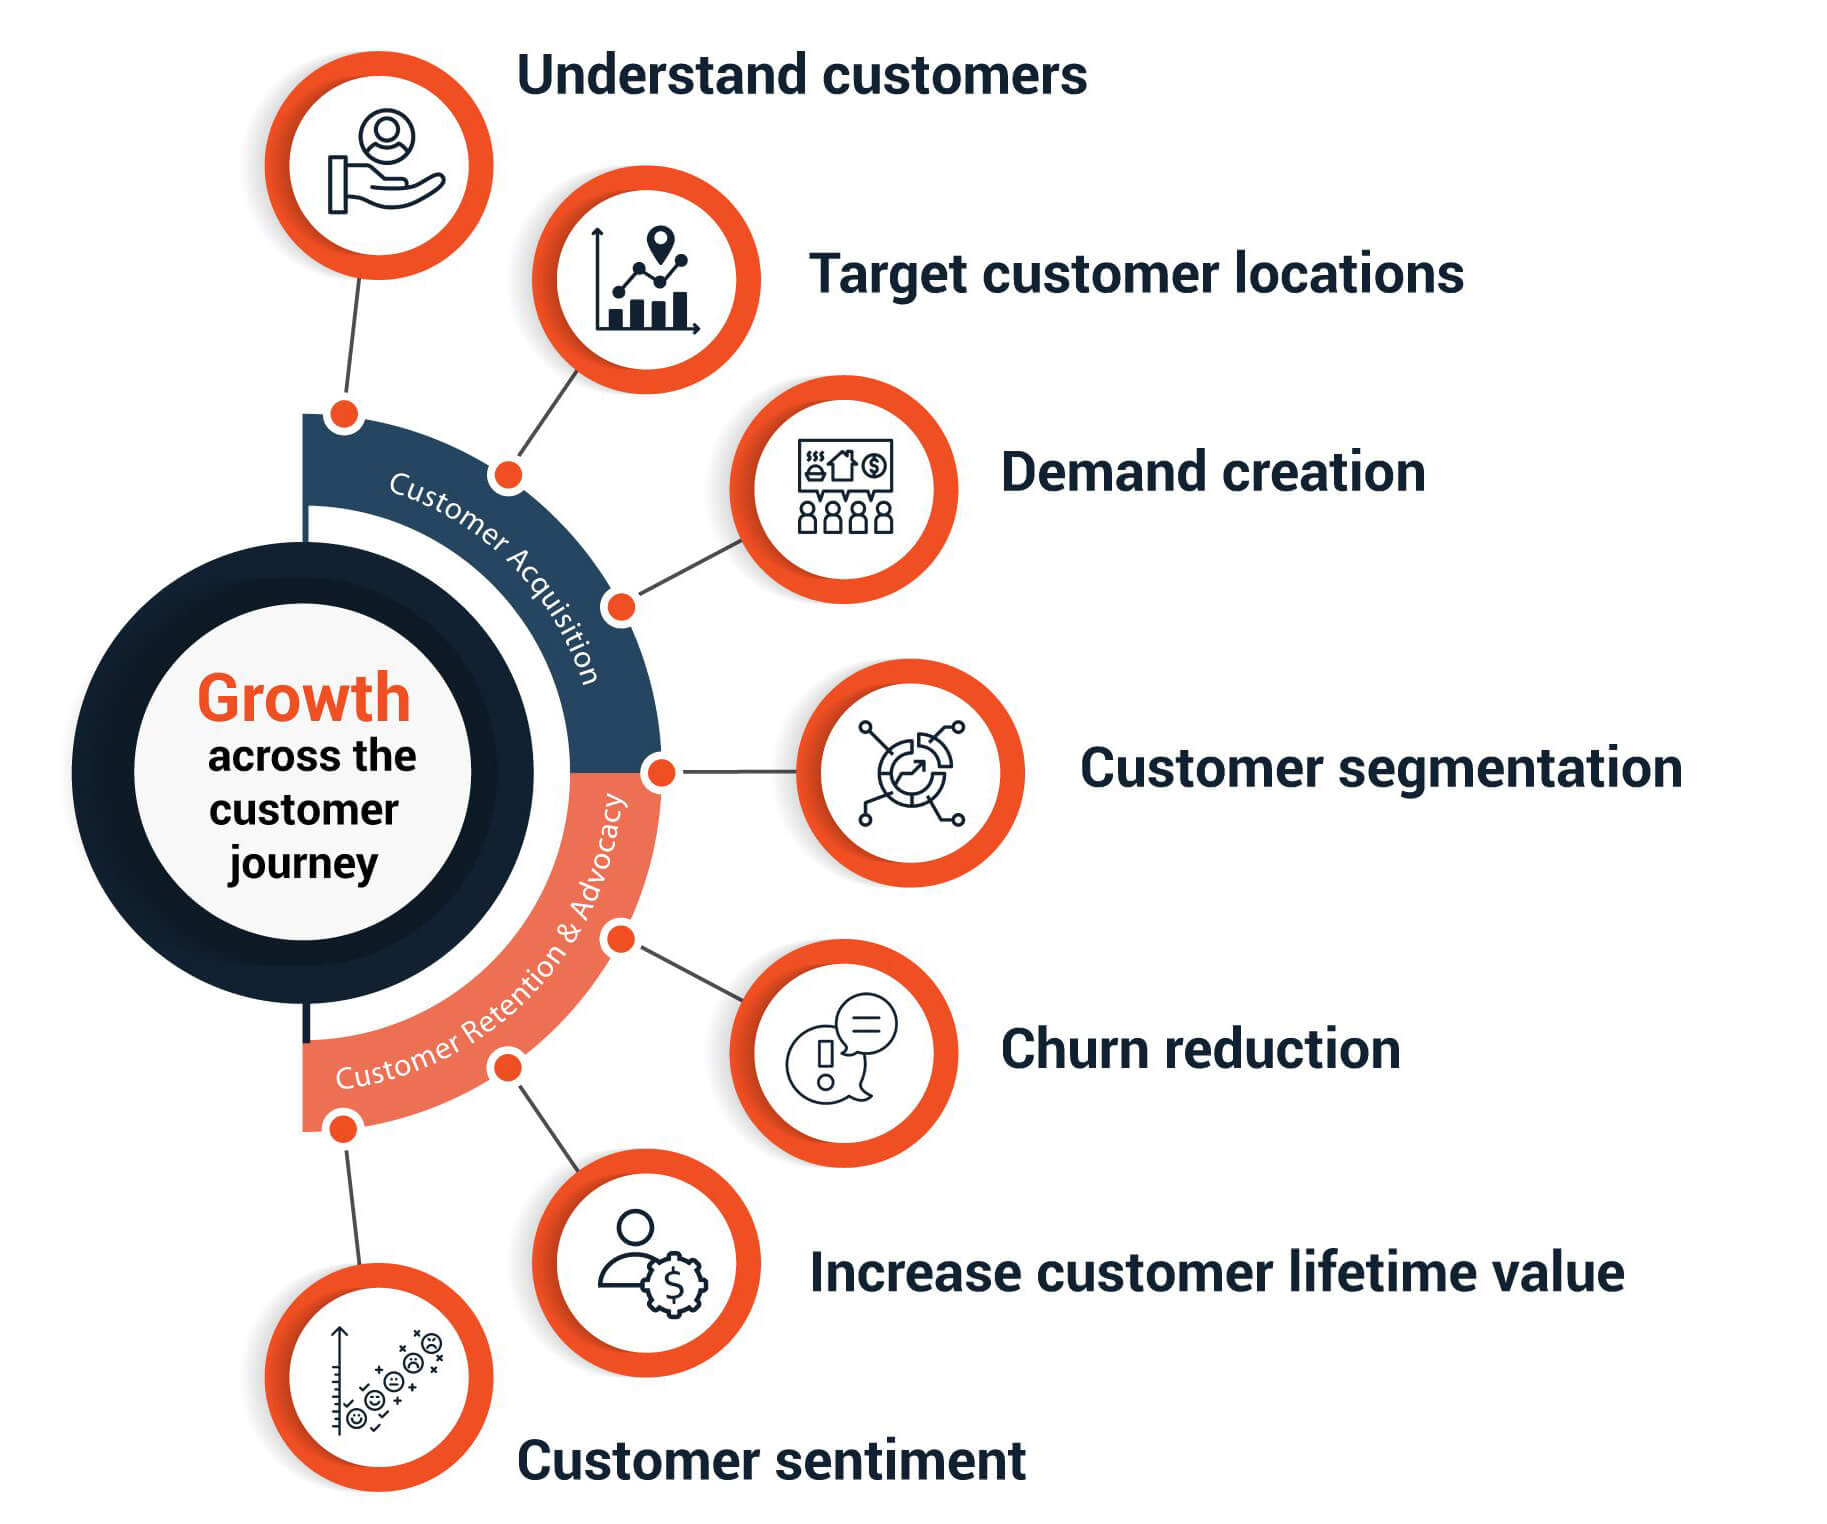 dataraft-graphics-7-circles-diagram-customer-growth